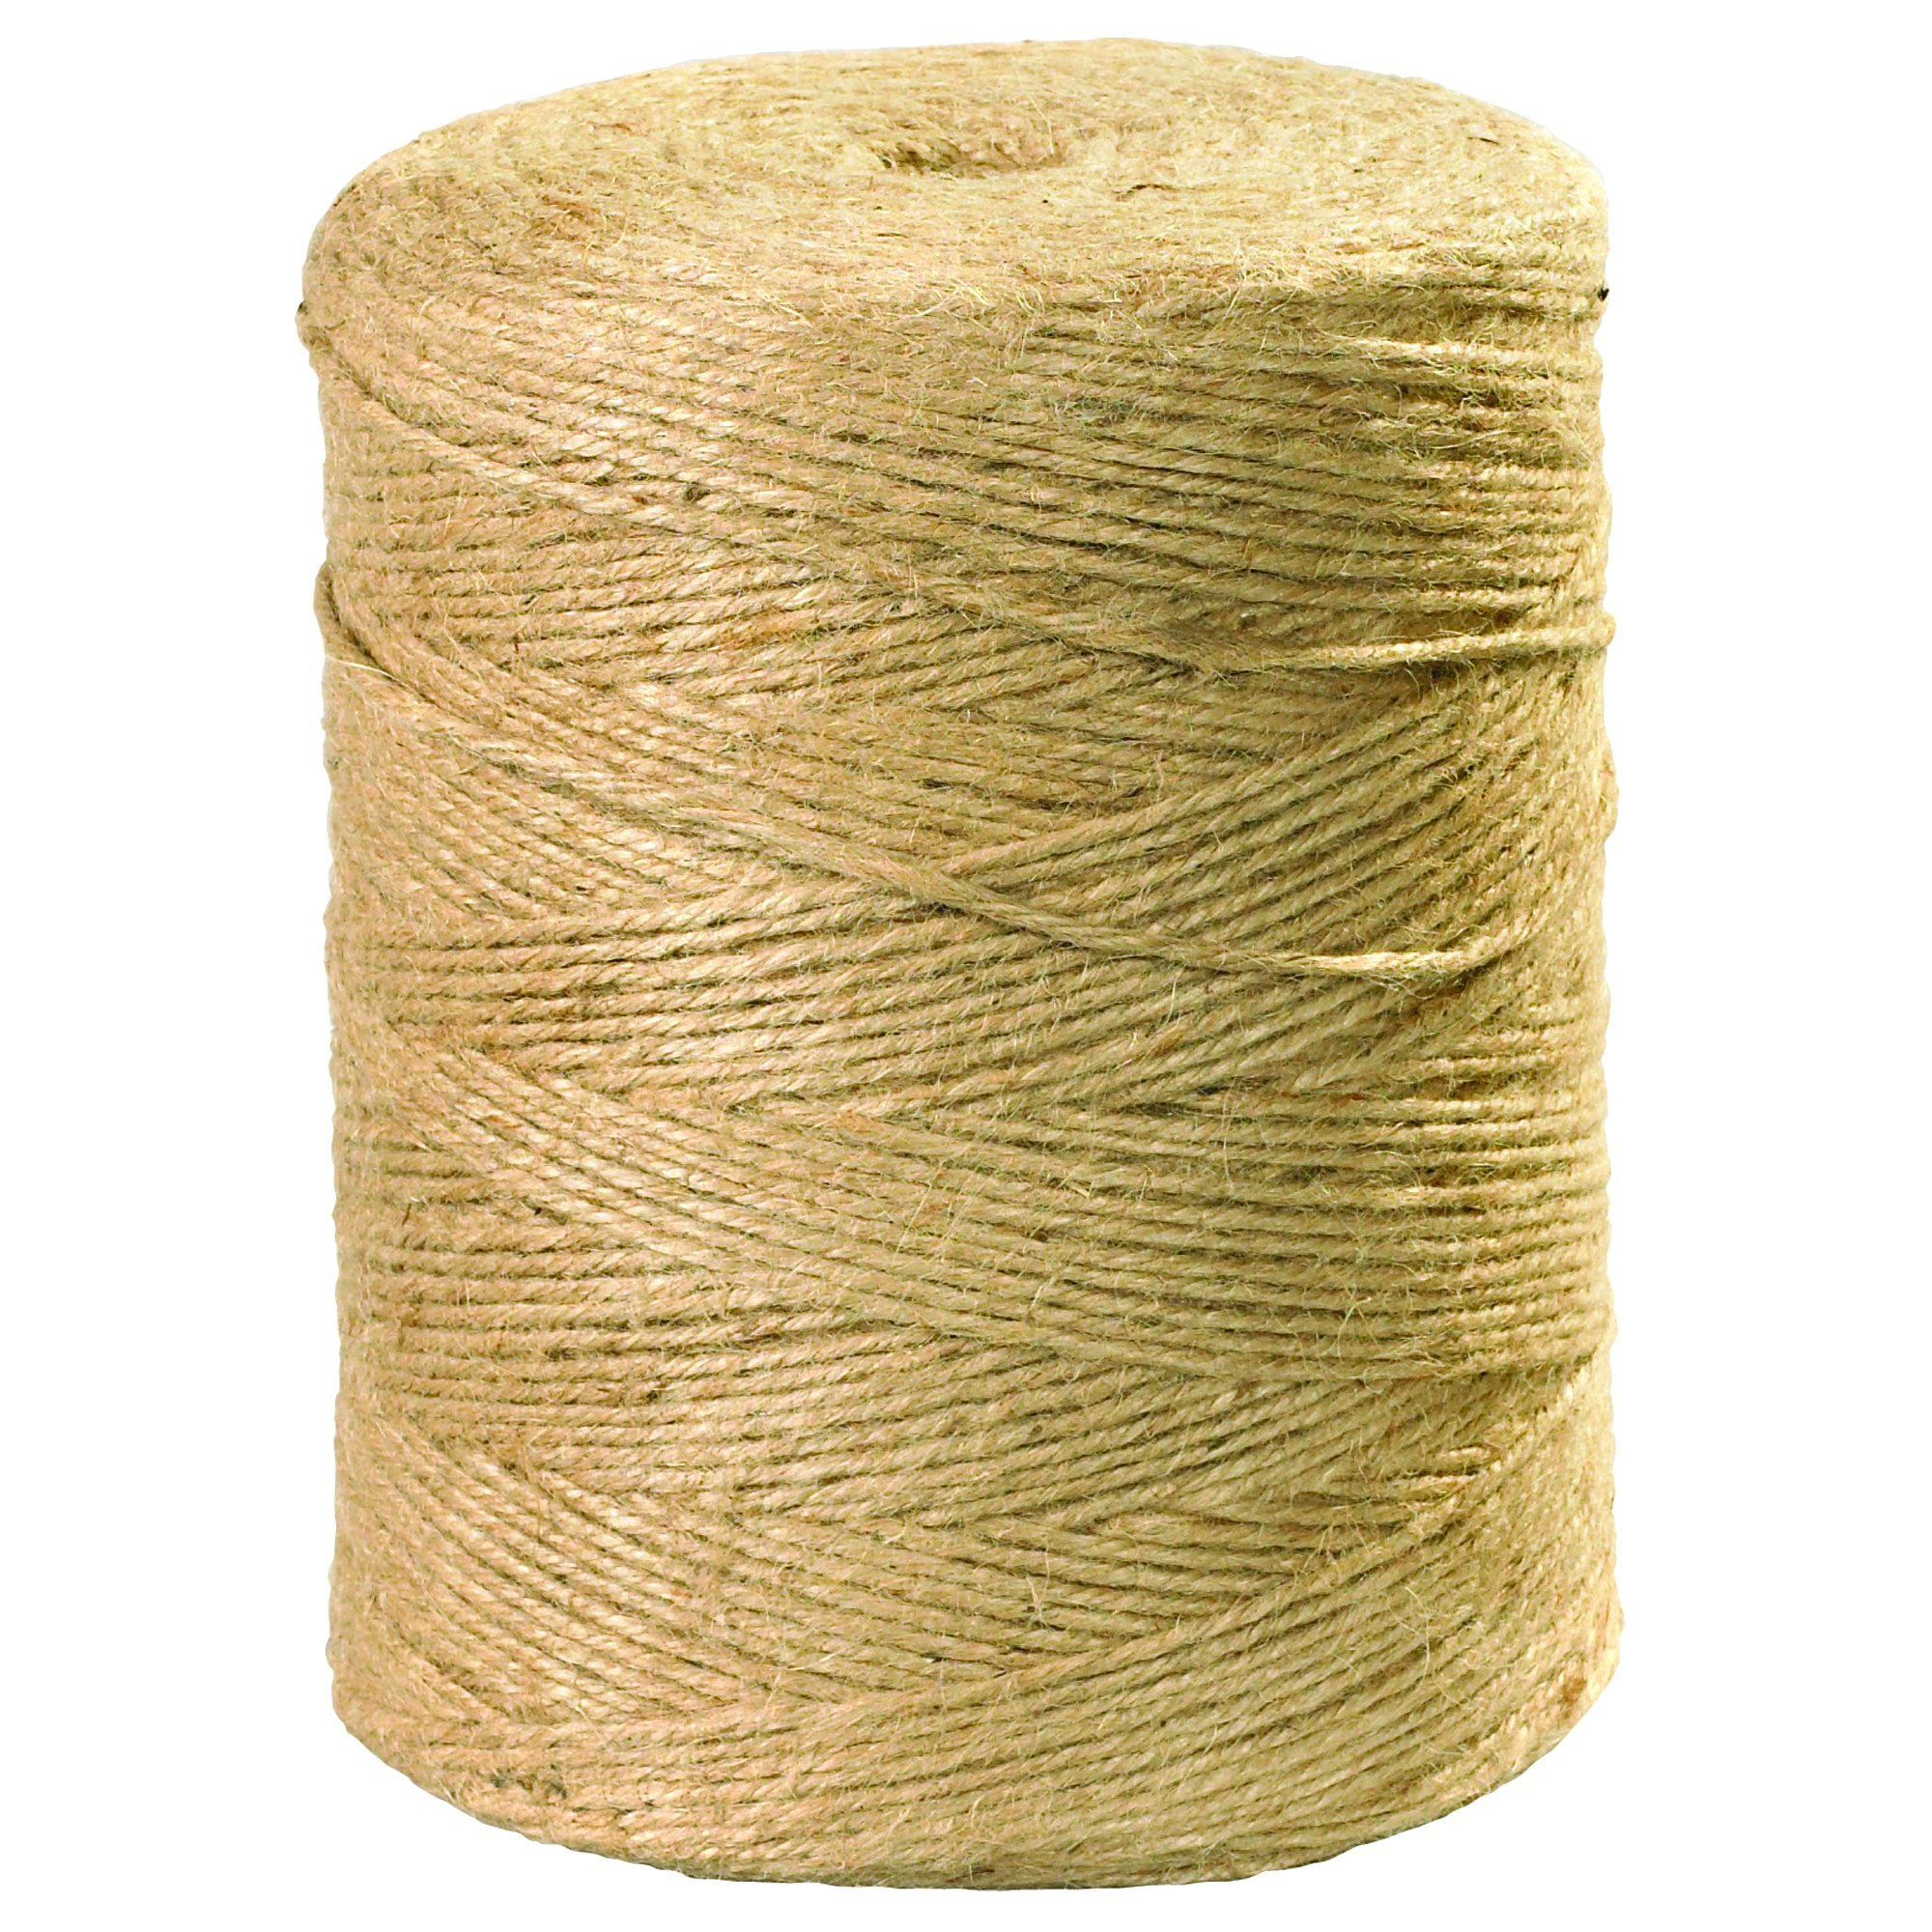 BOX USA BTWJ300 Jute Twine, 5-Ply, 140 lb, Natural, 3000' per Case by BOX USA